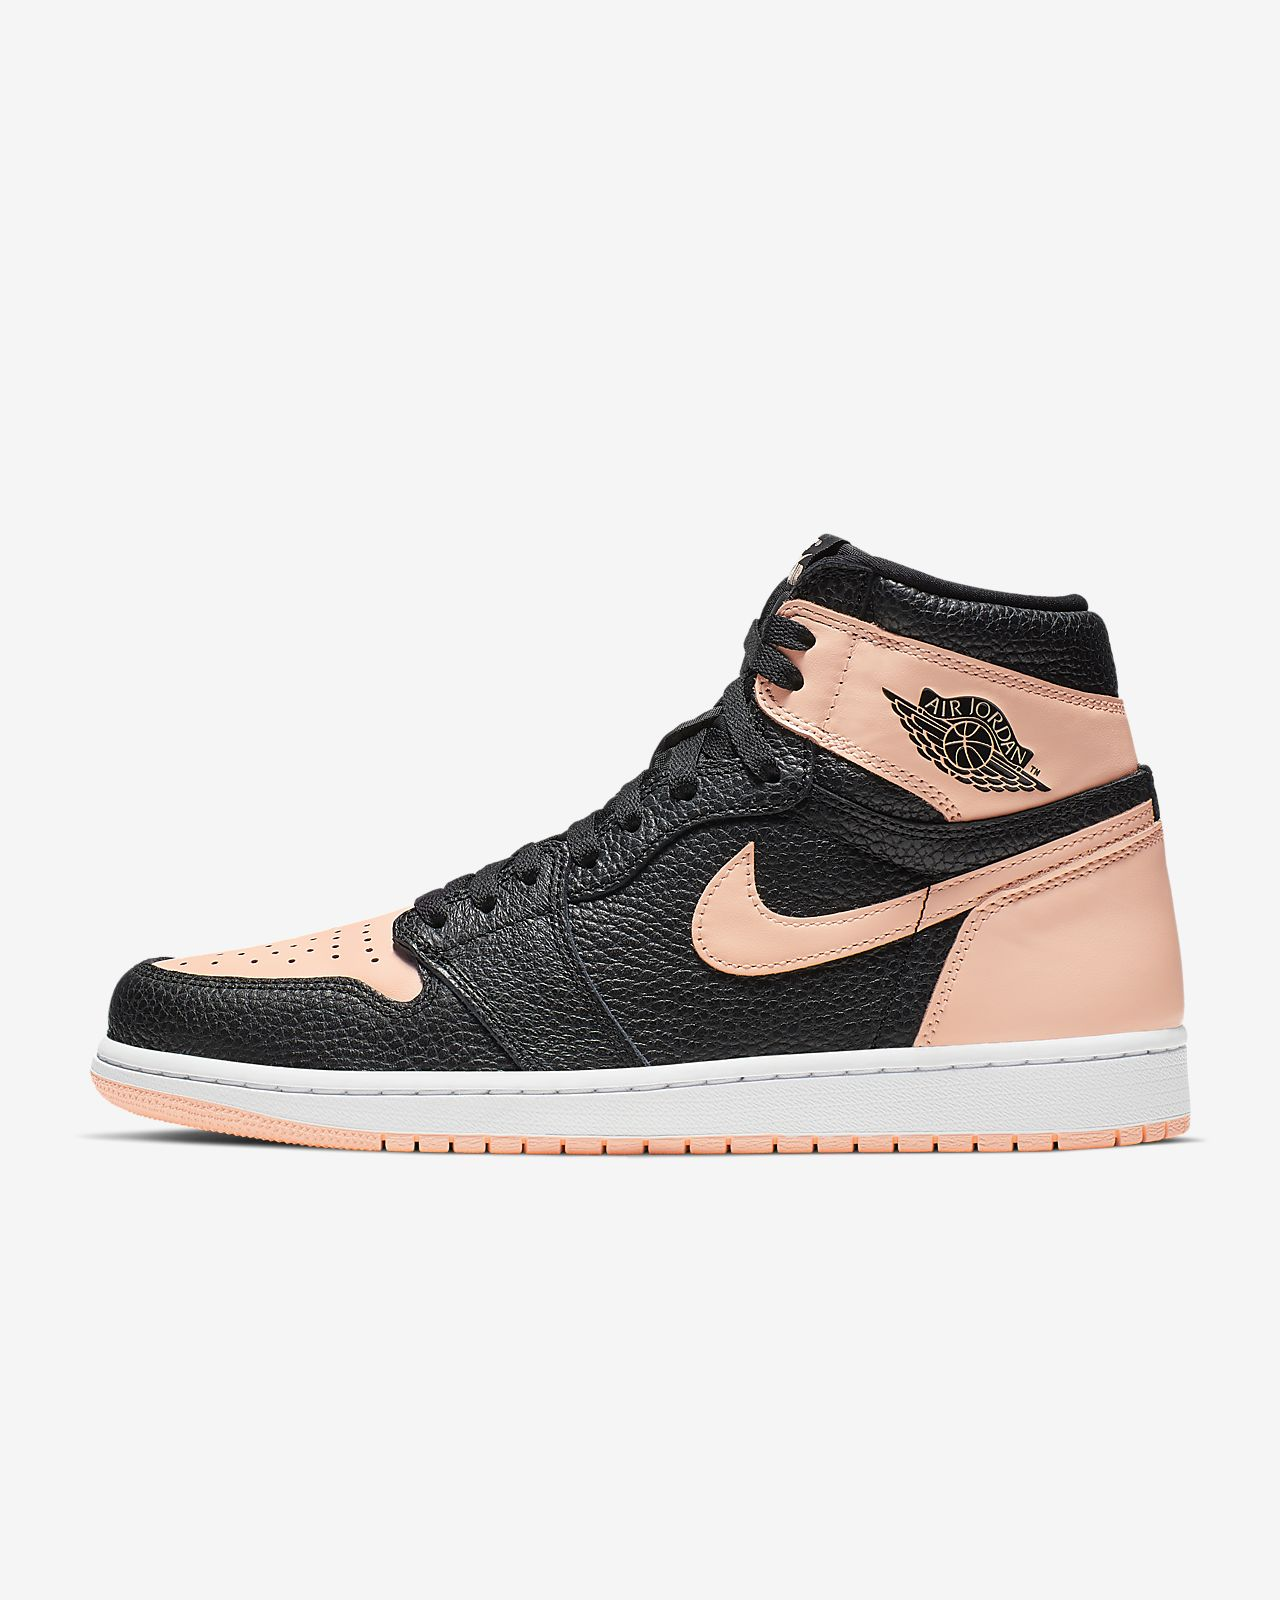 14b38aa7045f2c Air Jordan 1 Retro High OG Shoe. Nike.com